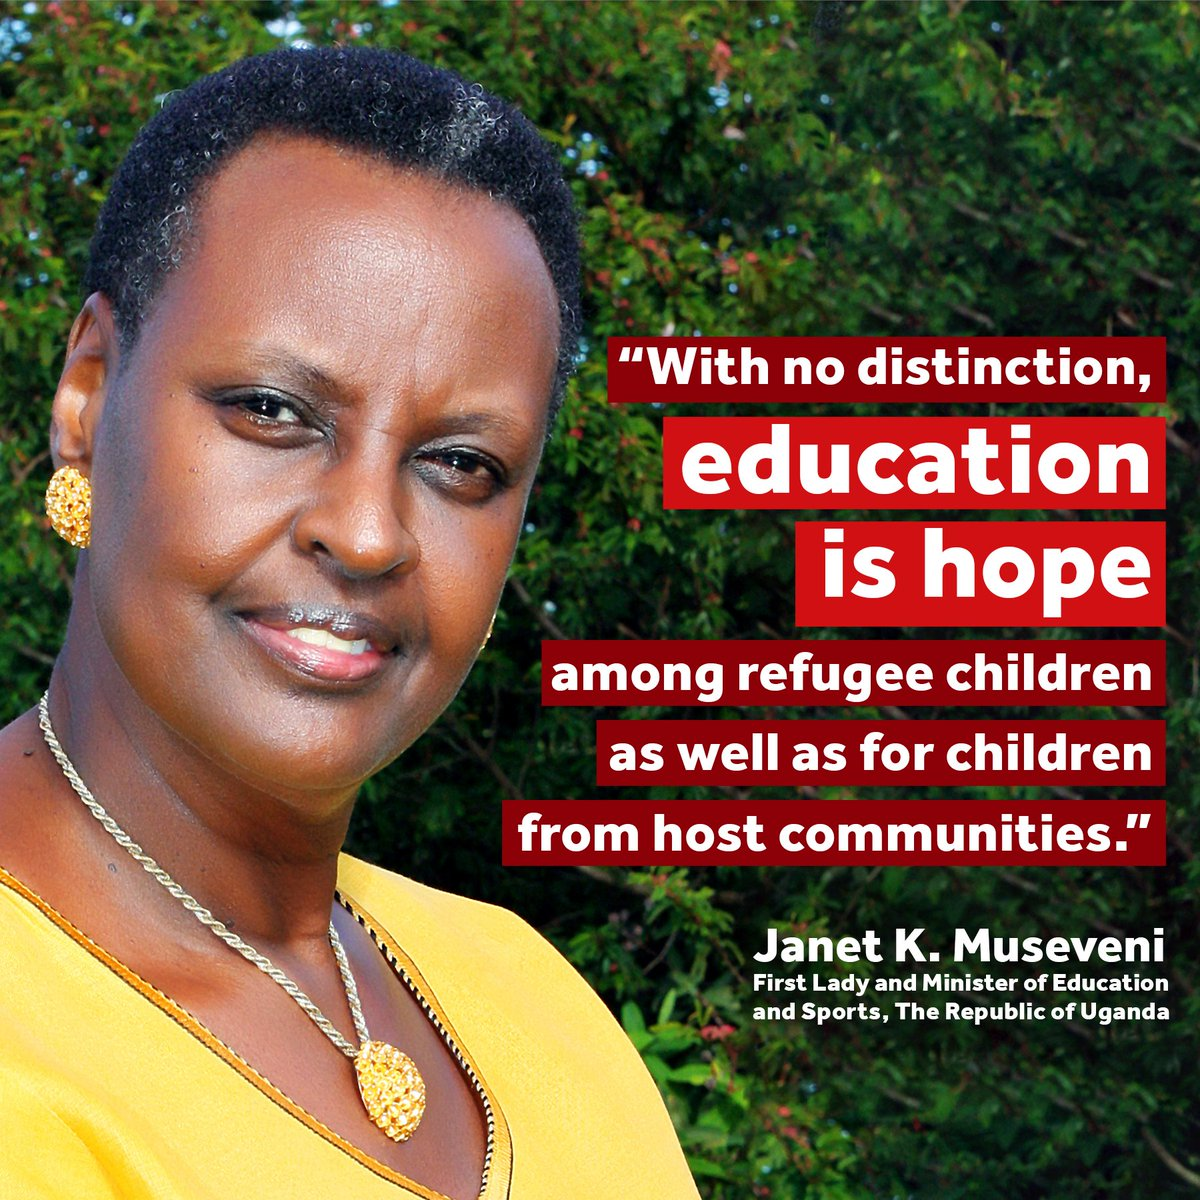 An inspiring quote from @JanetMuseveni, First Lady And Minister of Education And Sports, The Republic of Uganda. Uganda is one of the nations that will benefit from the 2019 Humanitarian Grant.#PlayMatters